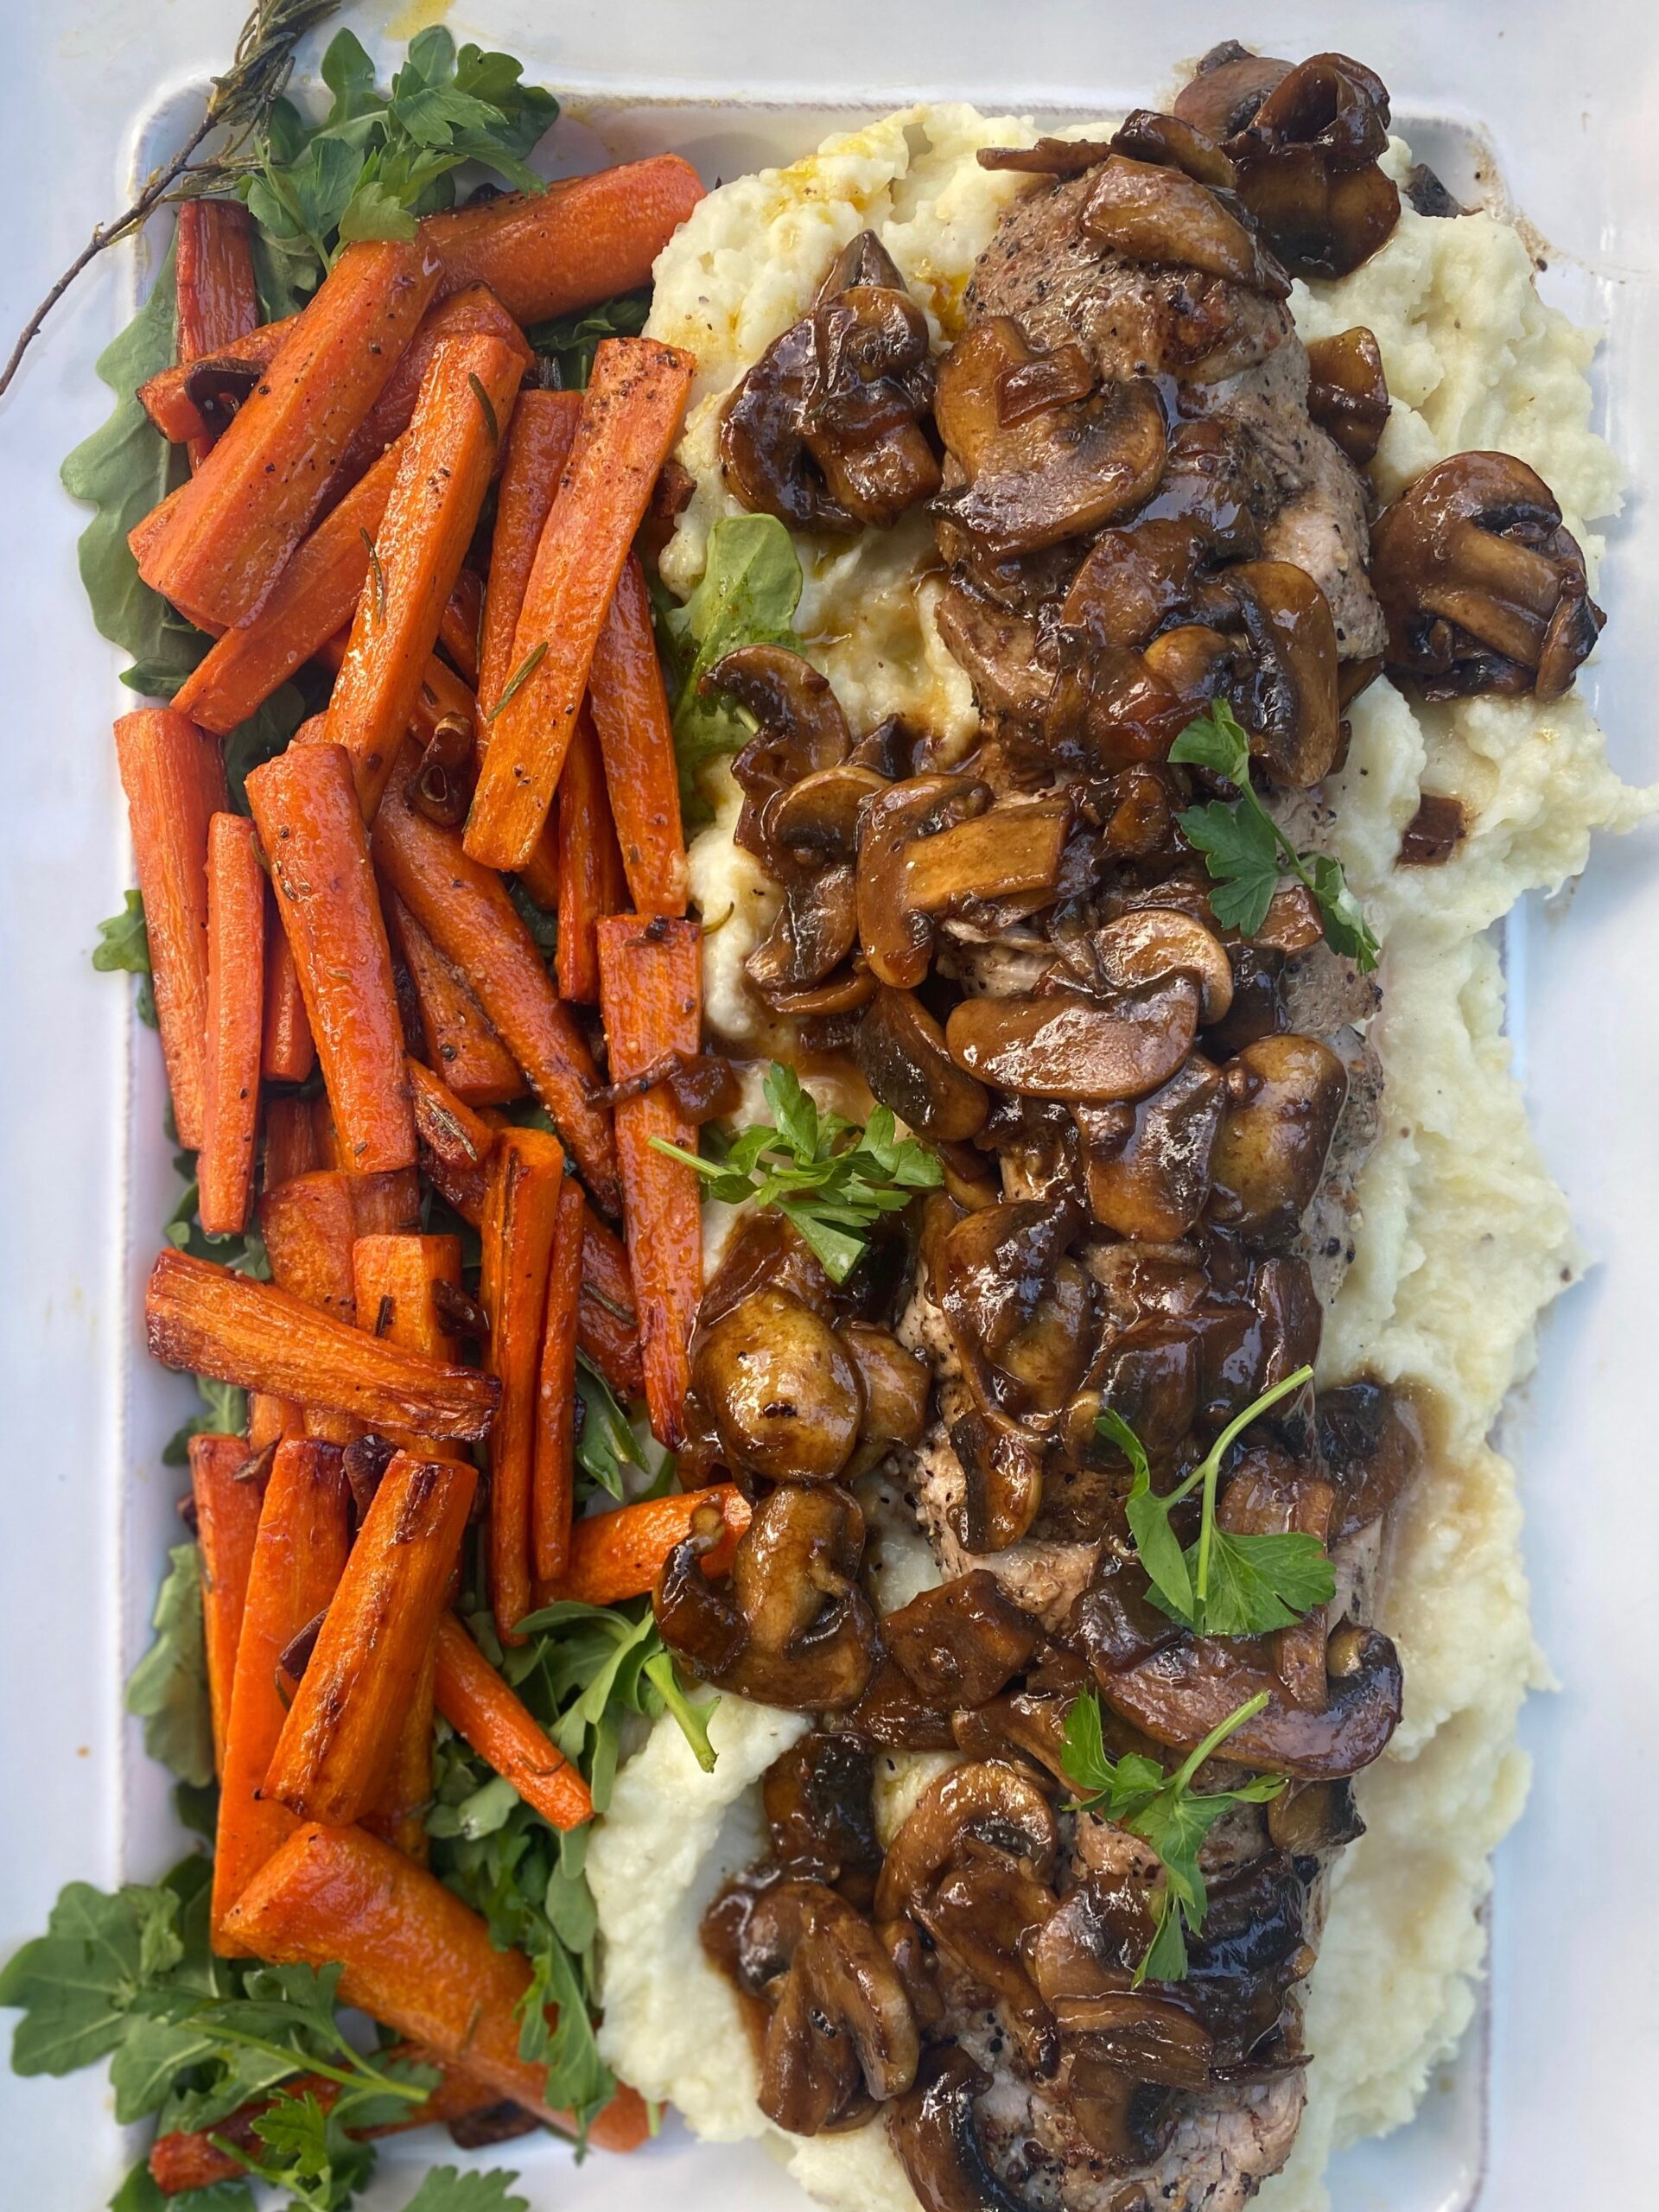 garlic rosemary carrots with pork tenderloin and mashed potatoes